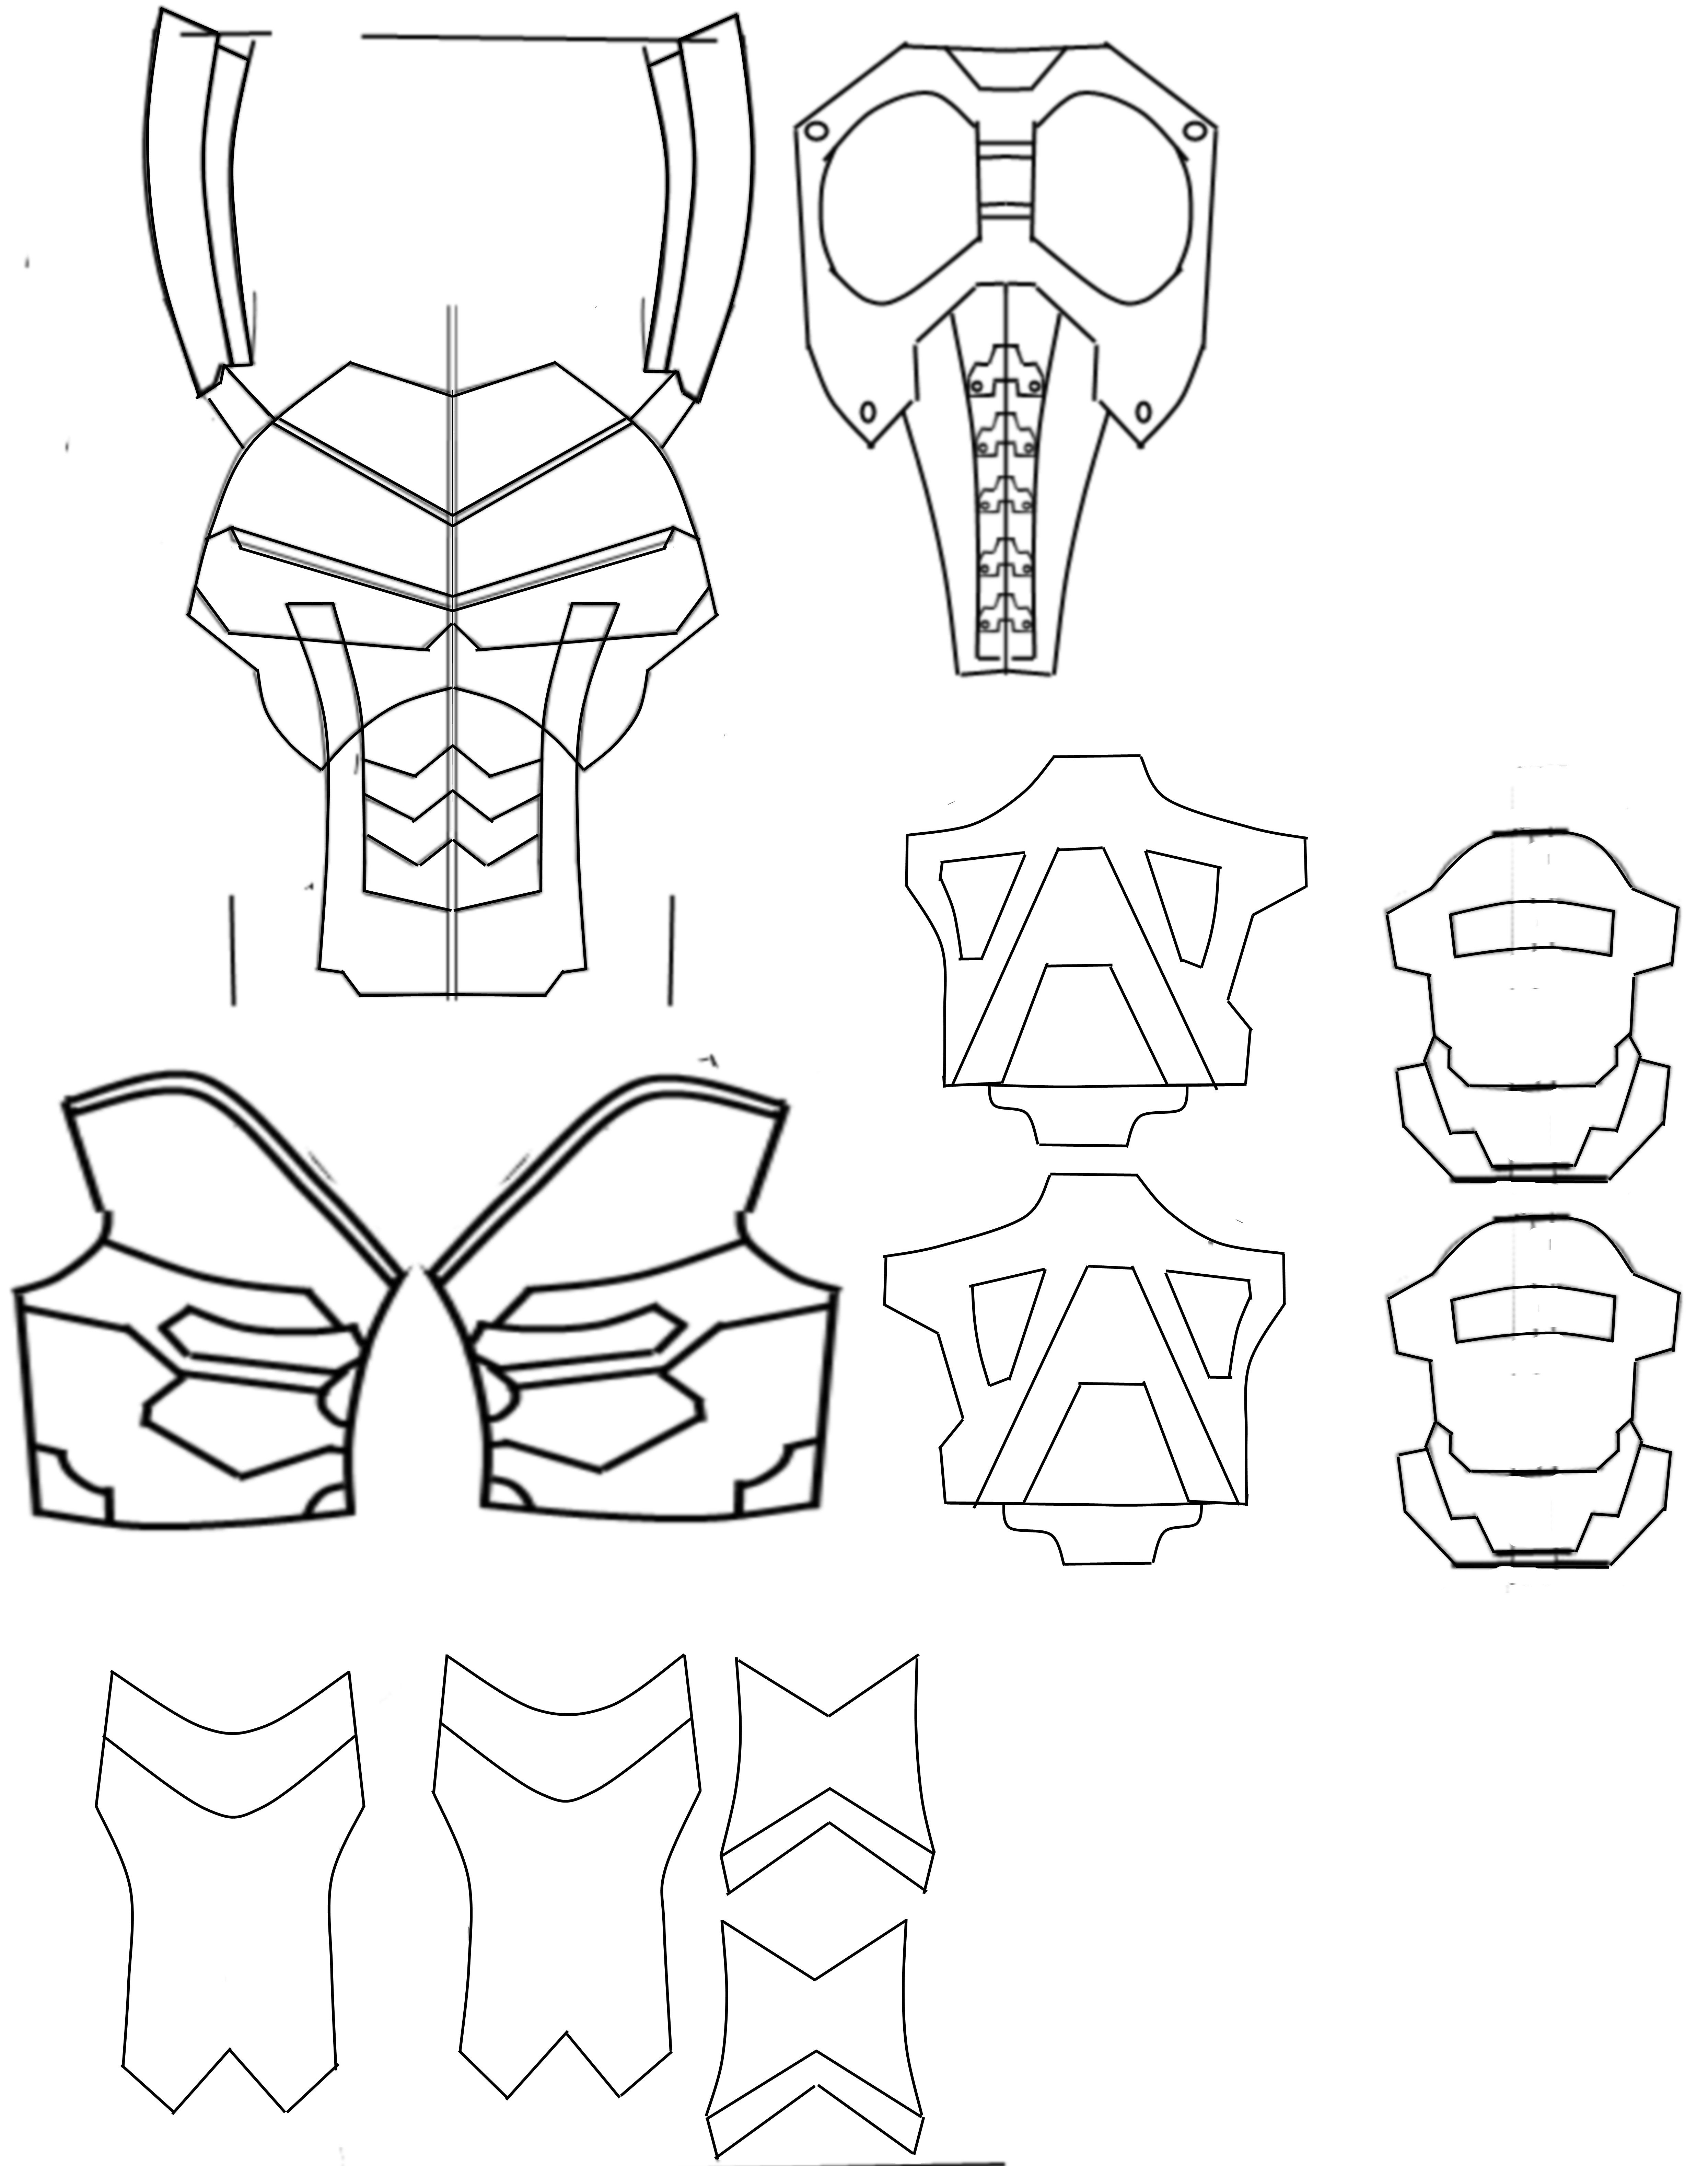 4 977 6 311 pixels armors pinterest for Deathstroke armor template